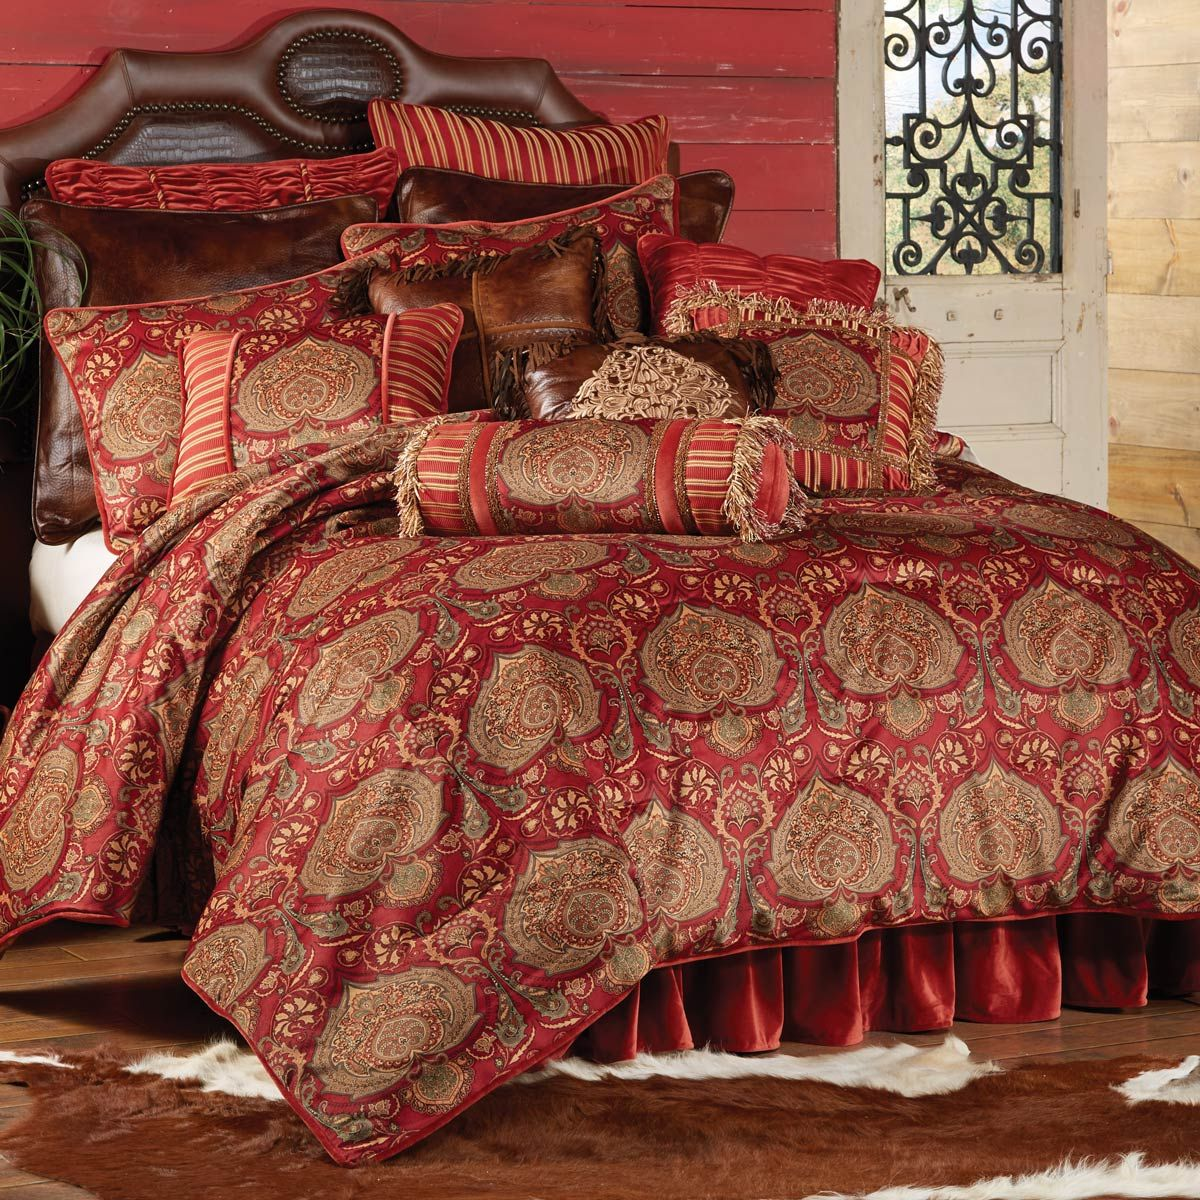 Western Bedding: King Size Lorenza Bed Set|Lone Star Western Decor